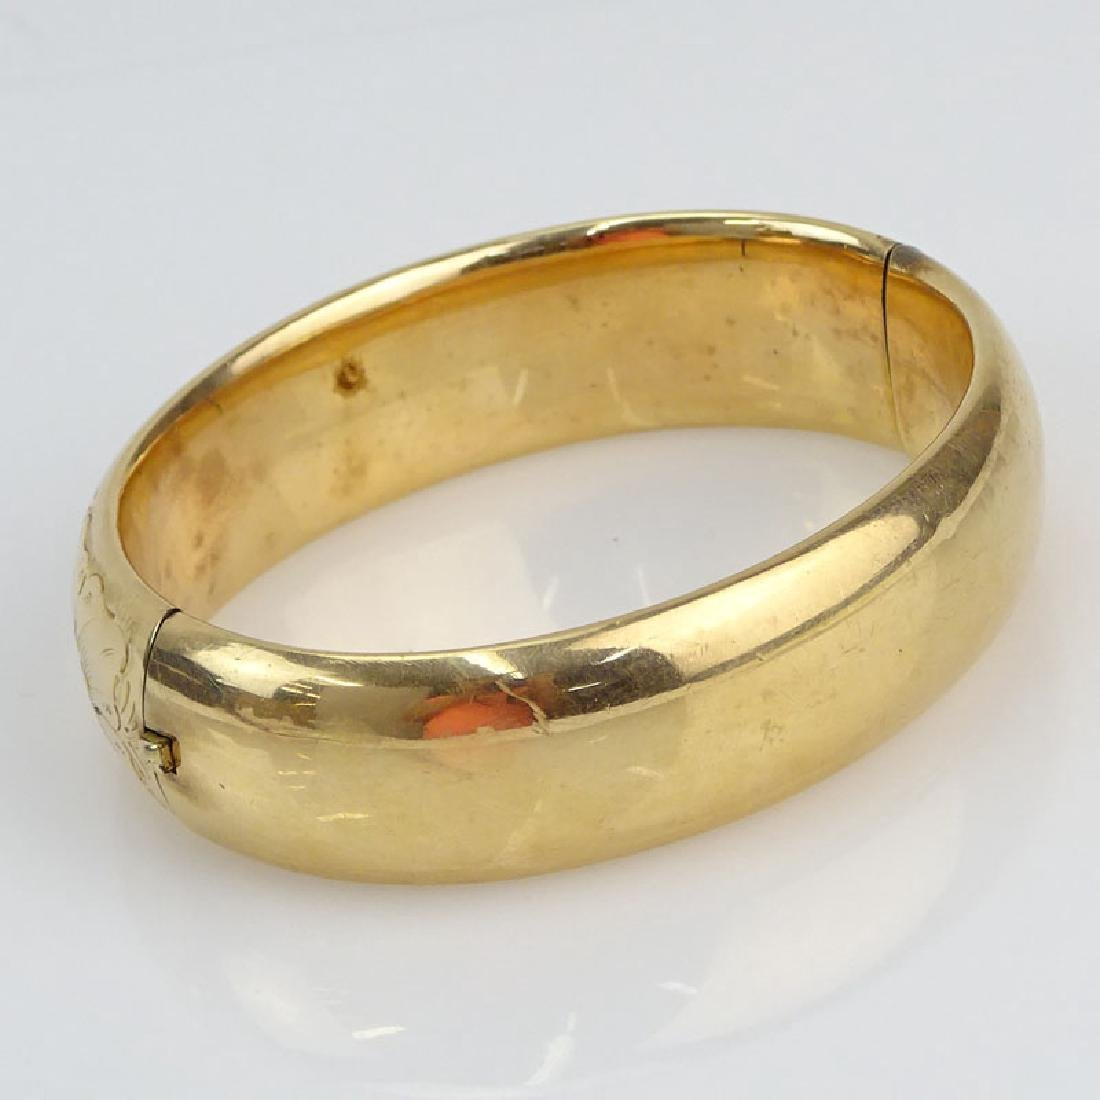 Antique 10 Karat Yellow Gold and Gold Filled Bangle - 2